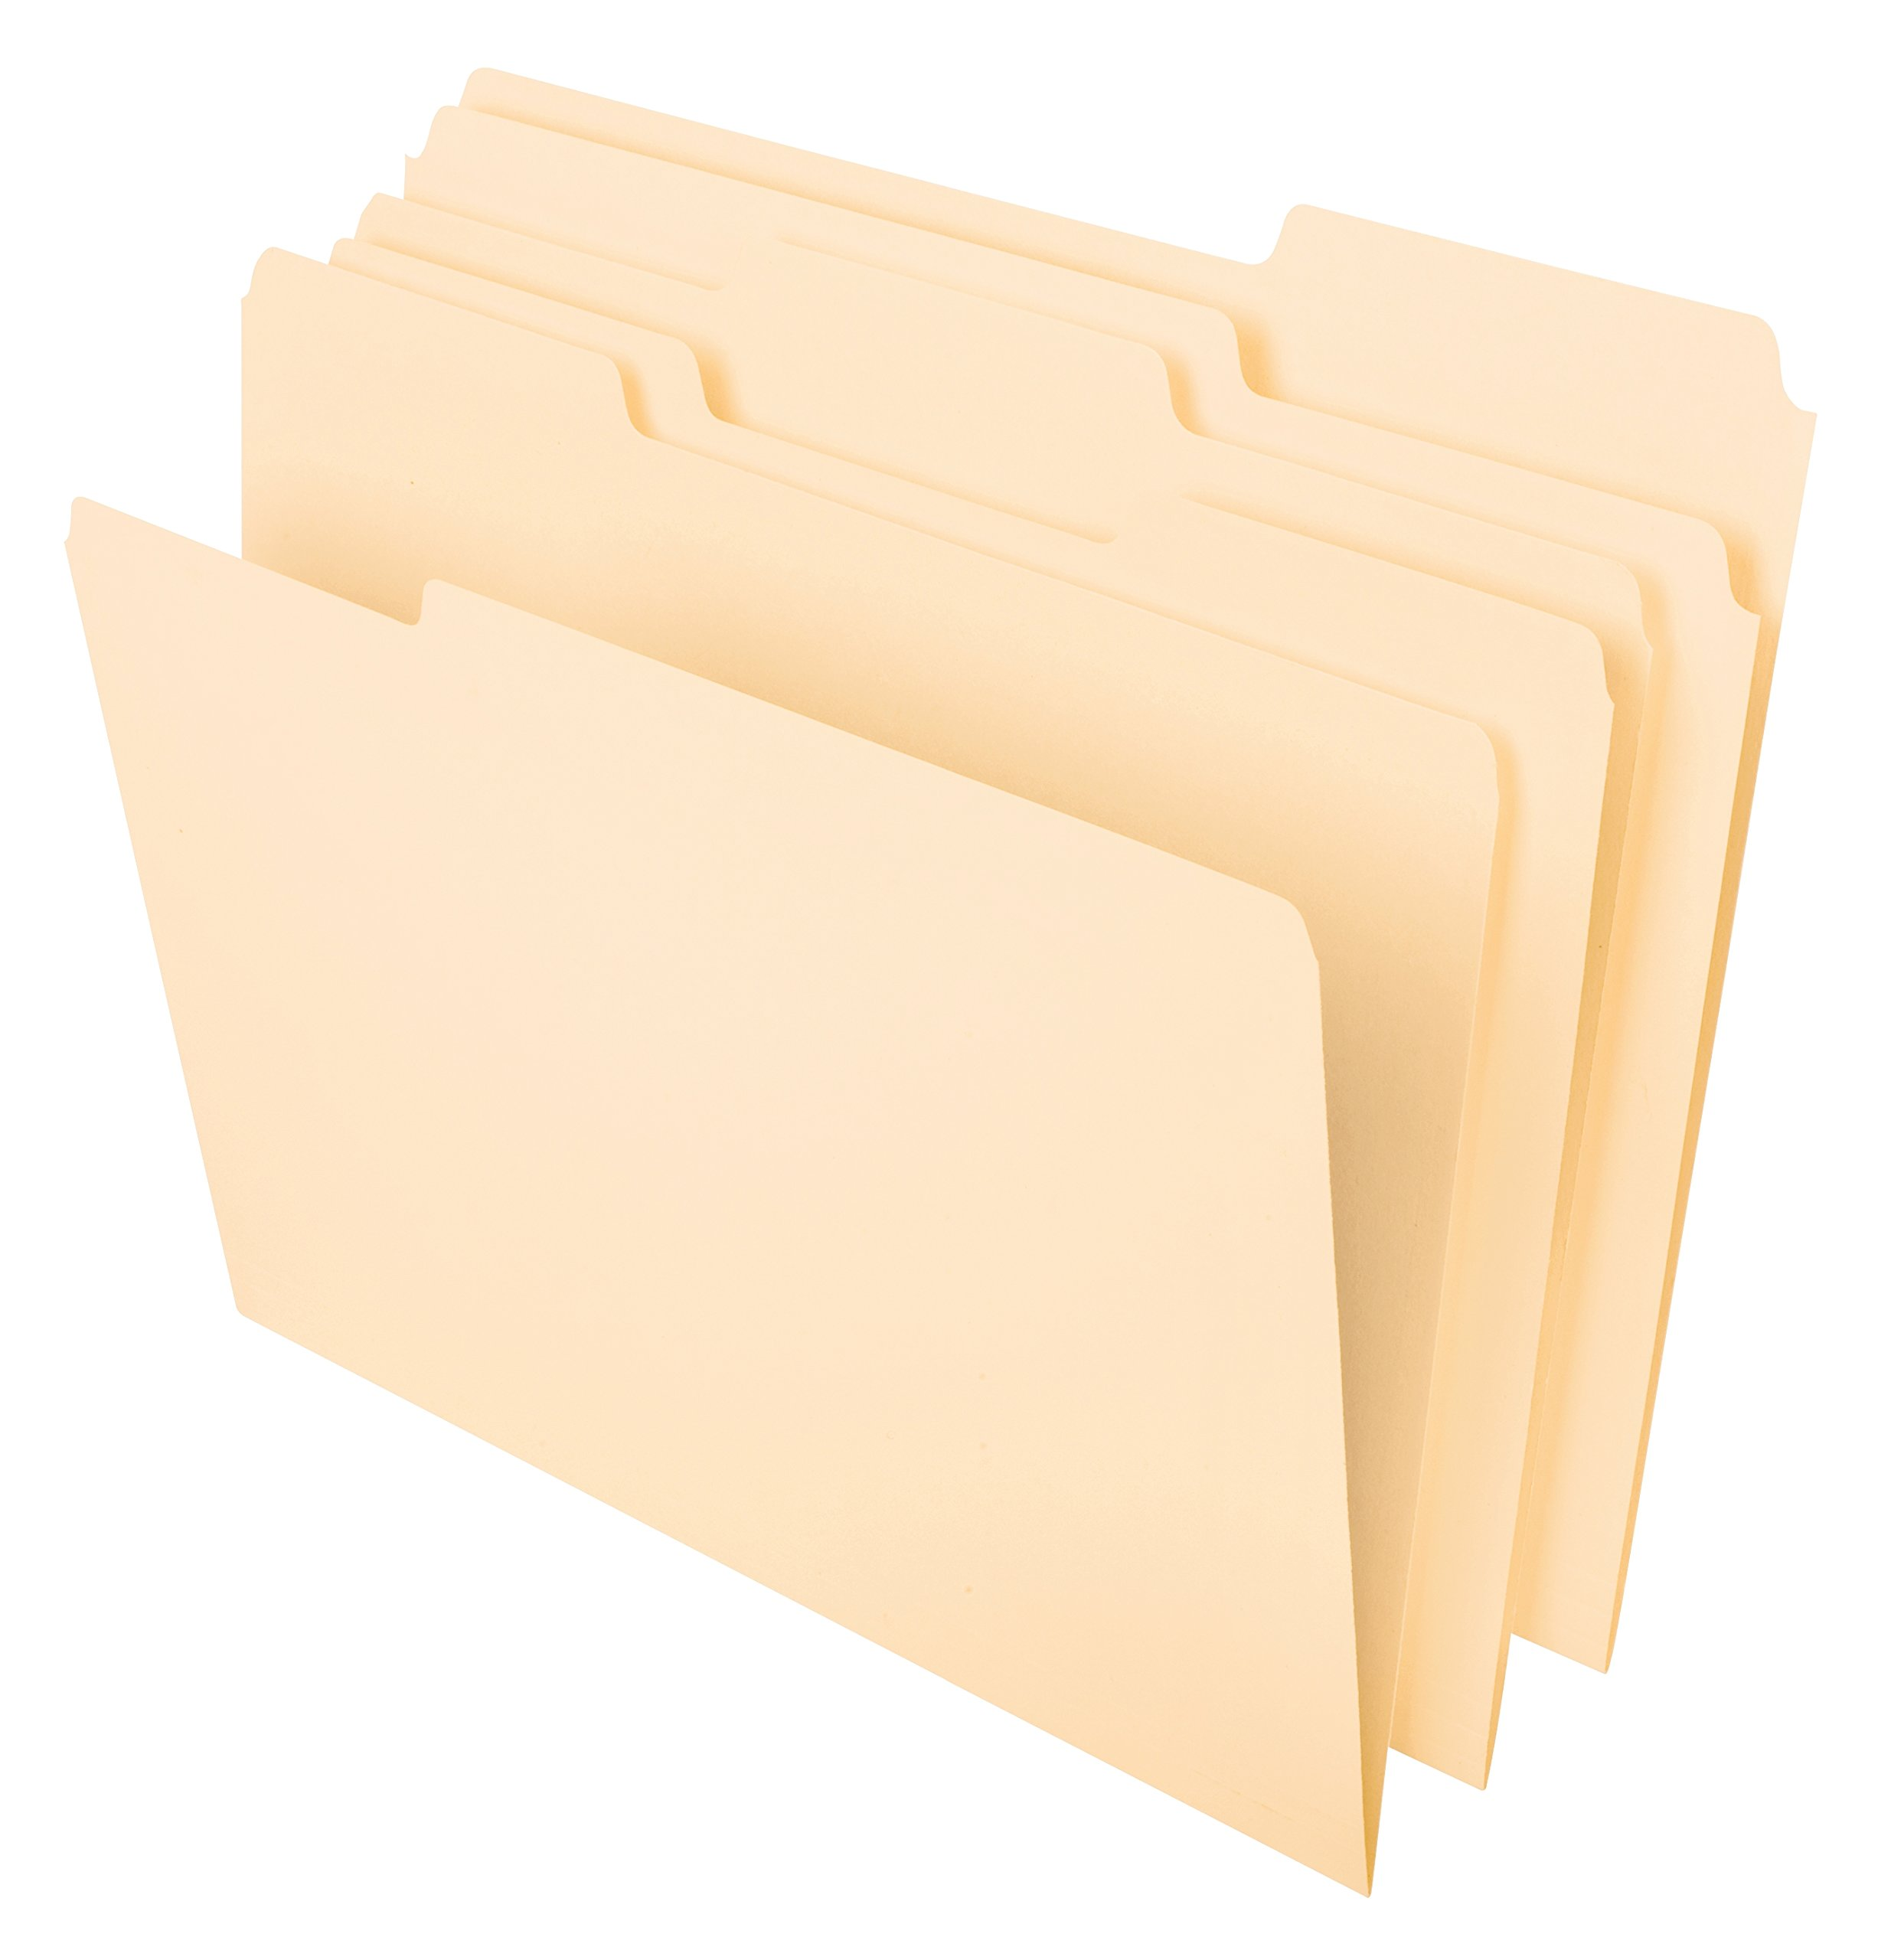 Pendaflex File Folders, Letter Size, 8-1/2'' x 11'', Classic Manila, 1/3-Cut Tabs in Left, Right, Center Positions, 100 per Box (65213)